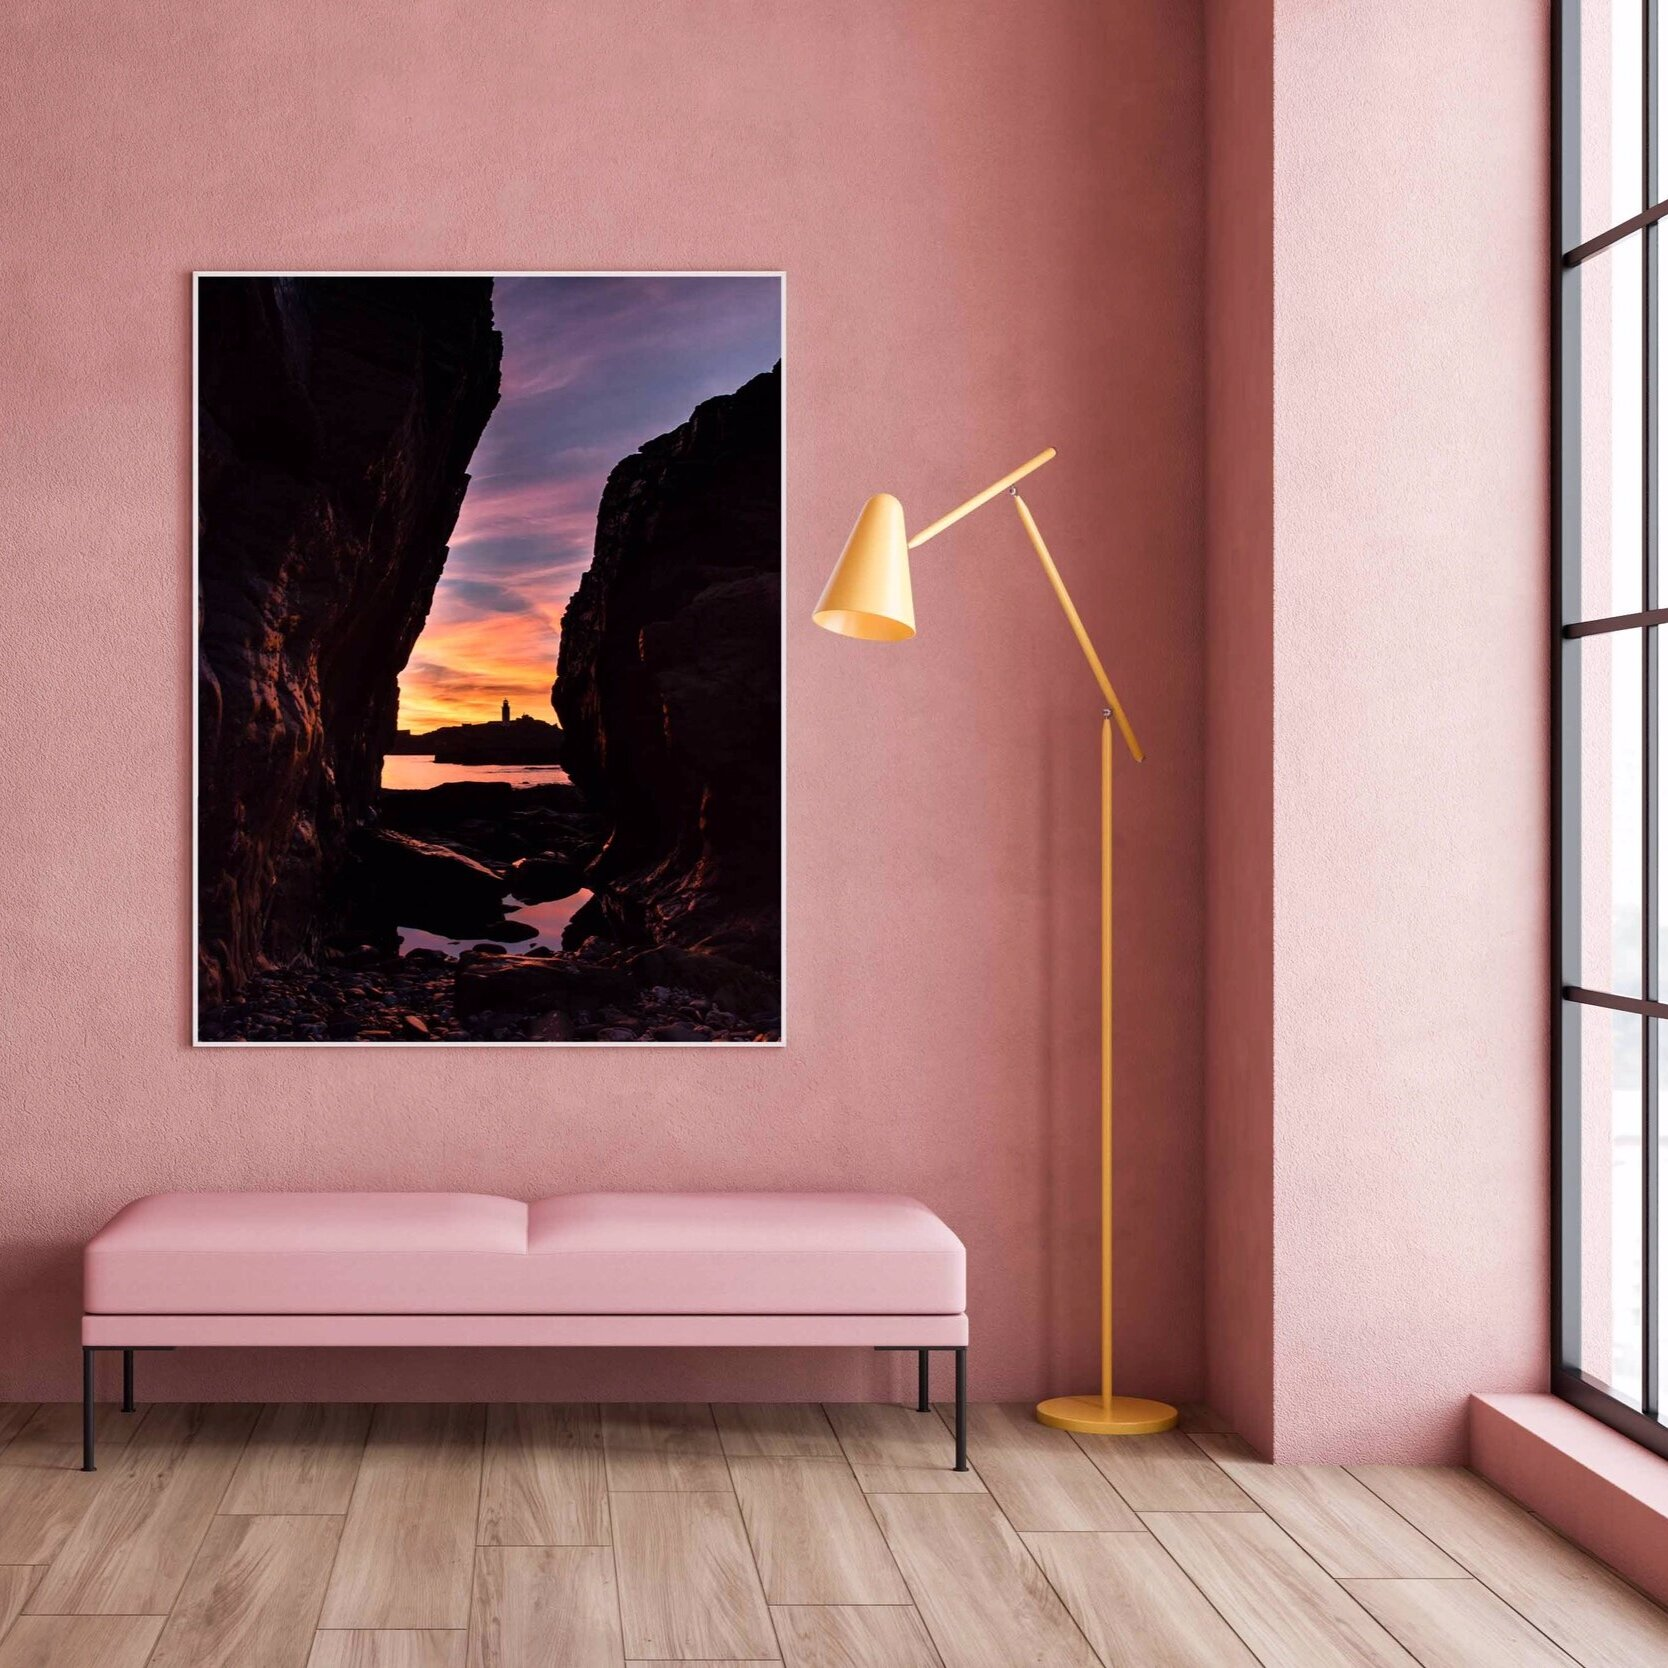 Sunset scenes - Dusty pink walls, the perfect way to add that sunset shot to your home! Colour is back in and adding a beautiful sunset to a wall can be the perfect way to introduce some brighter colours to your interiors.